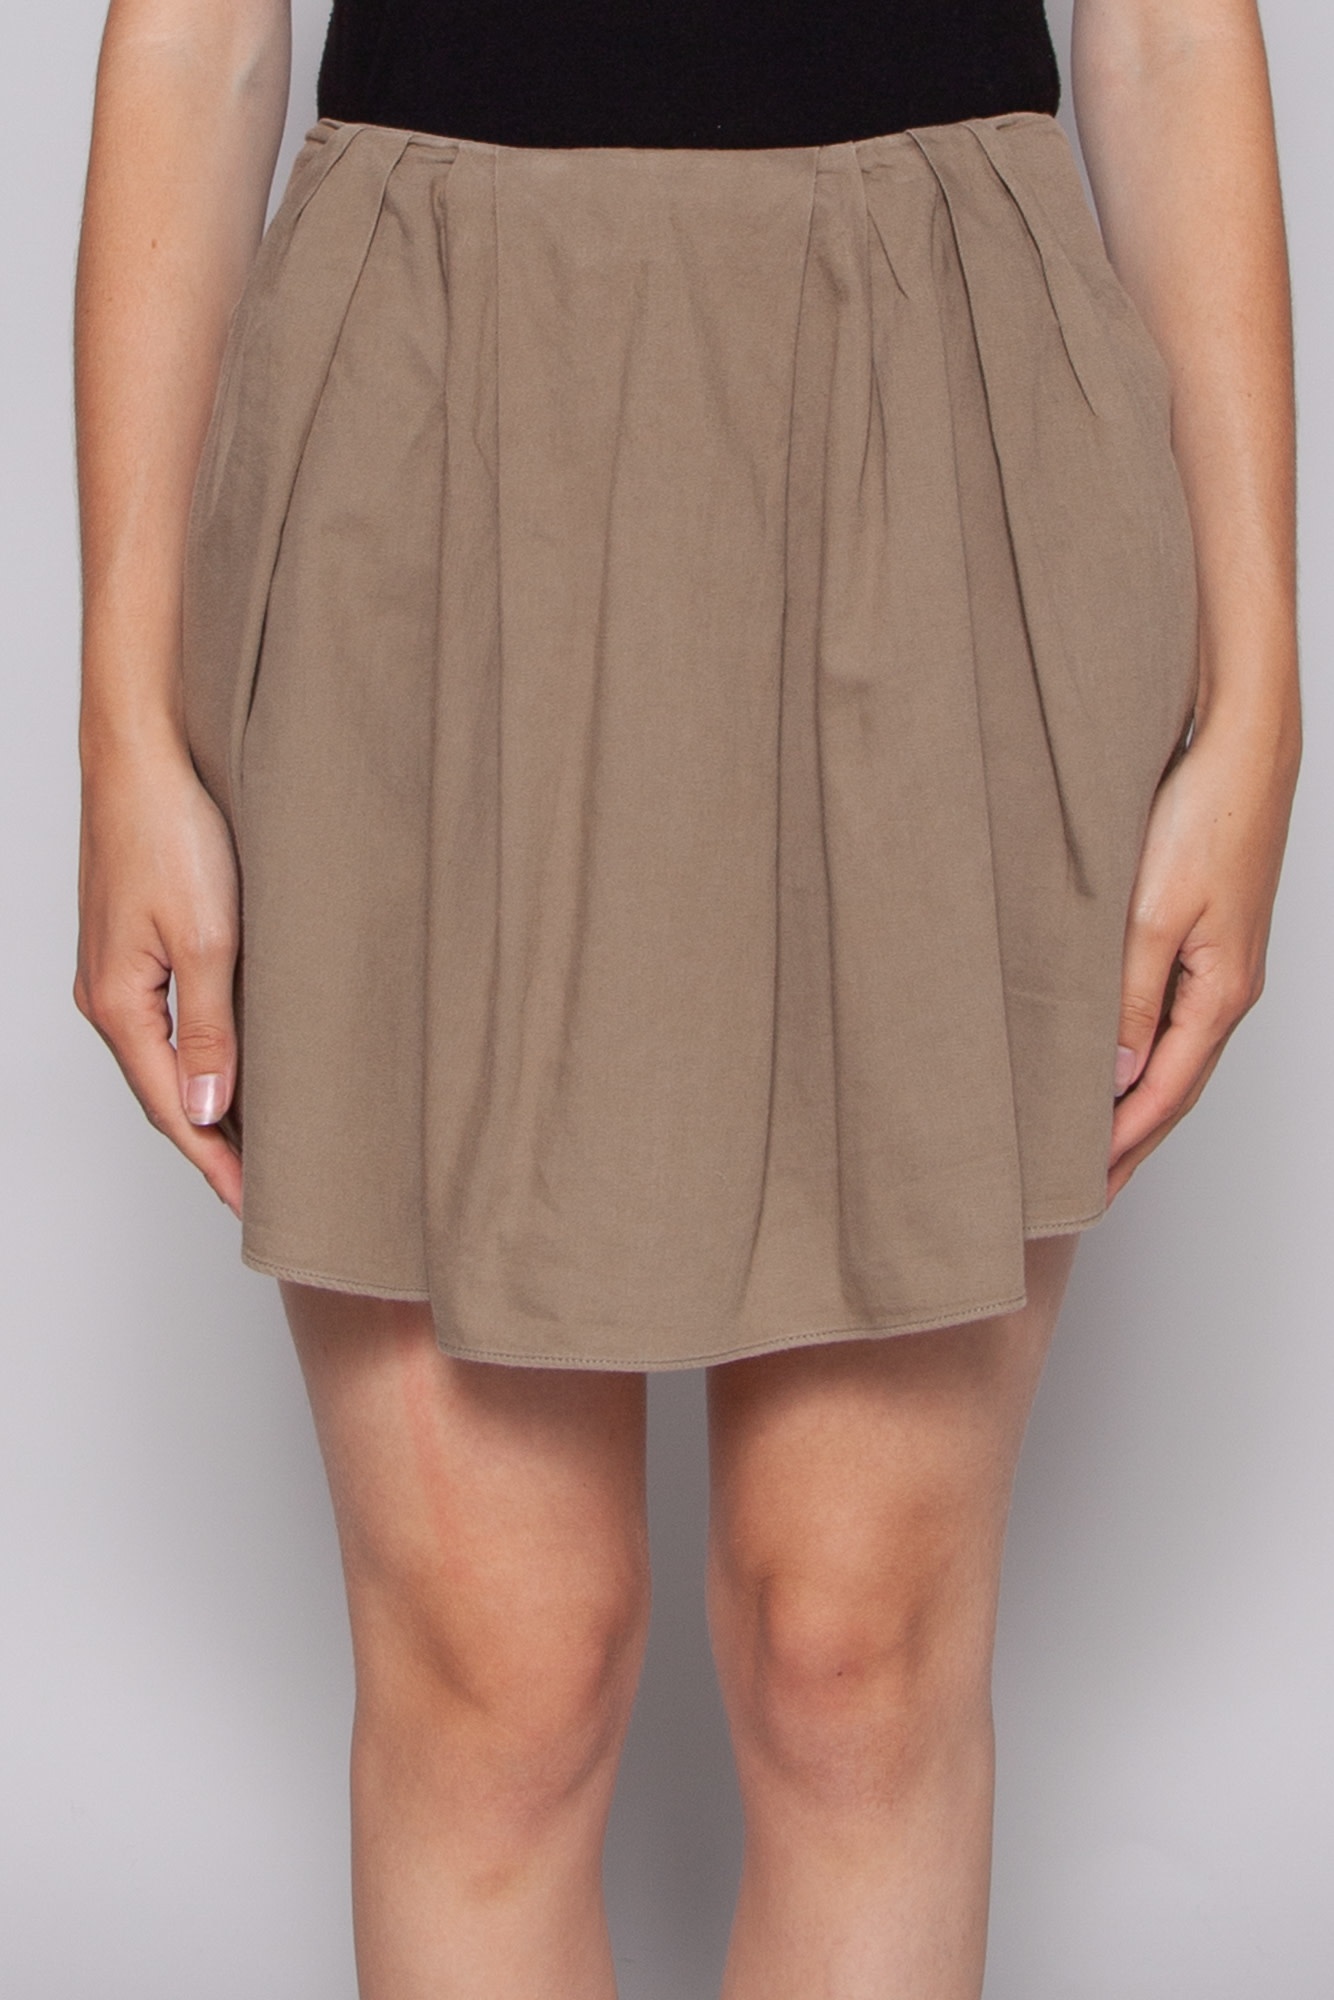 The Kooples SHORT PLEATED KHAKI SKIRT